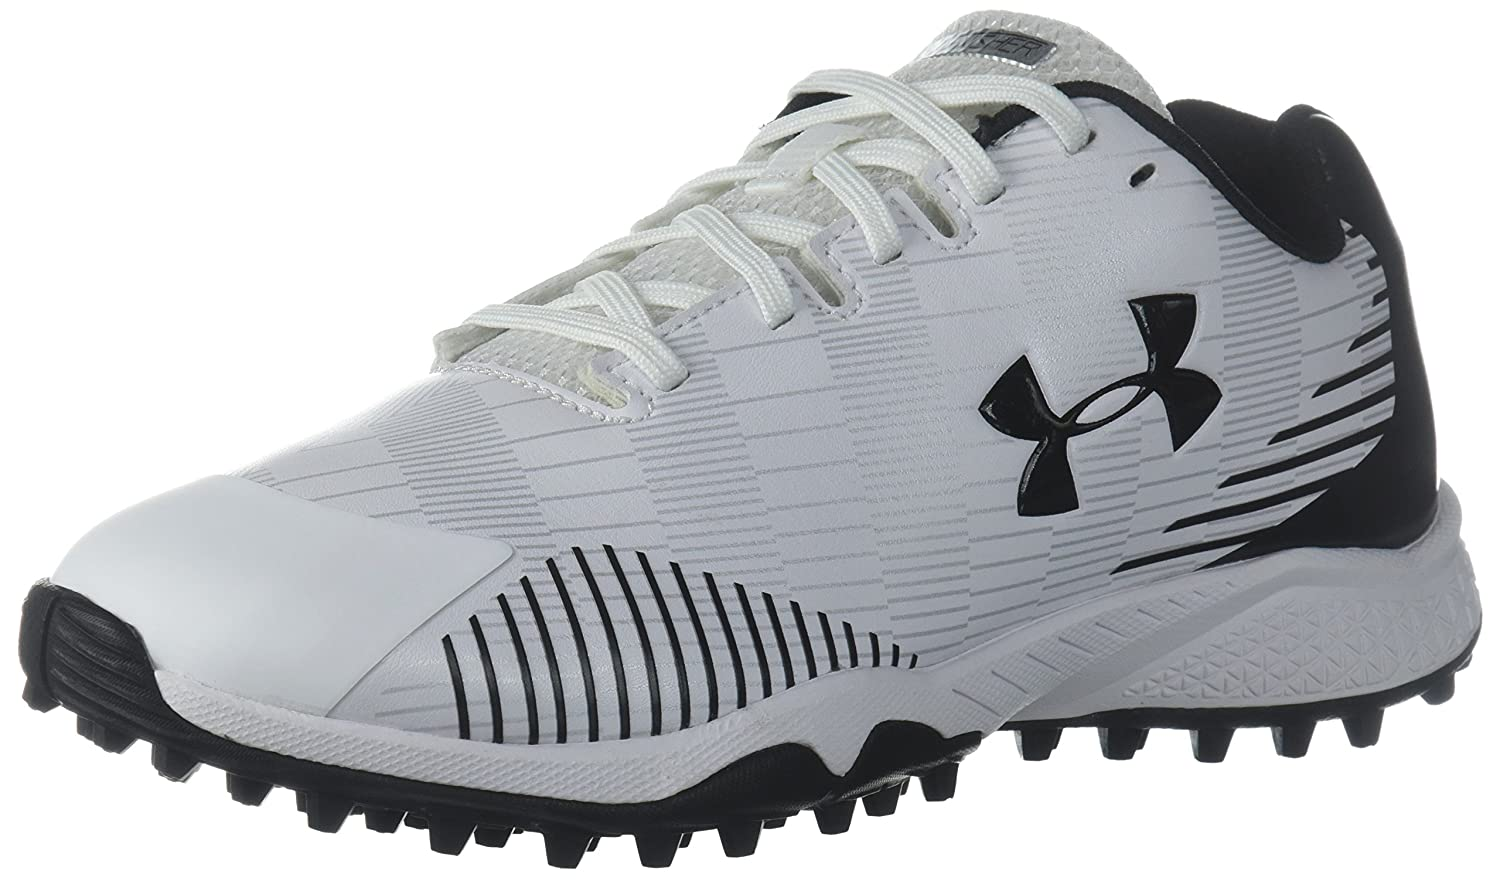 Under Armour Women's Lax Finisher Turf Lacrosse Shoe B071S8RBJ7 6 M US|White (100)/Black